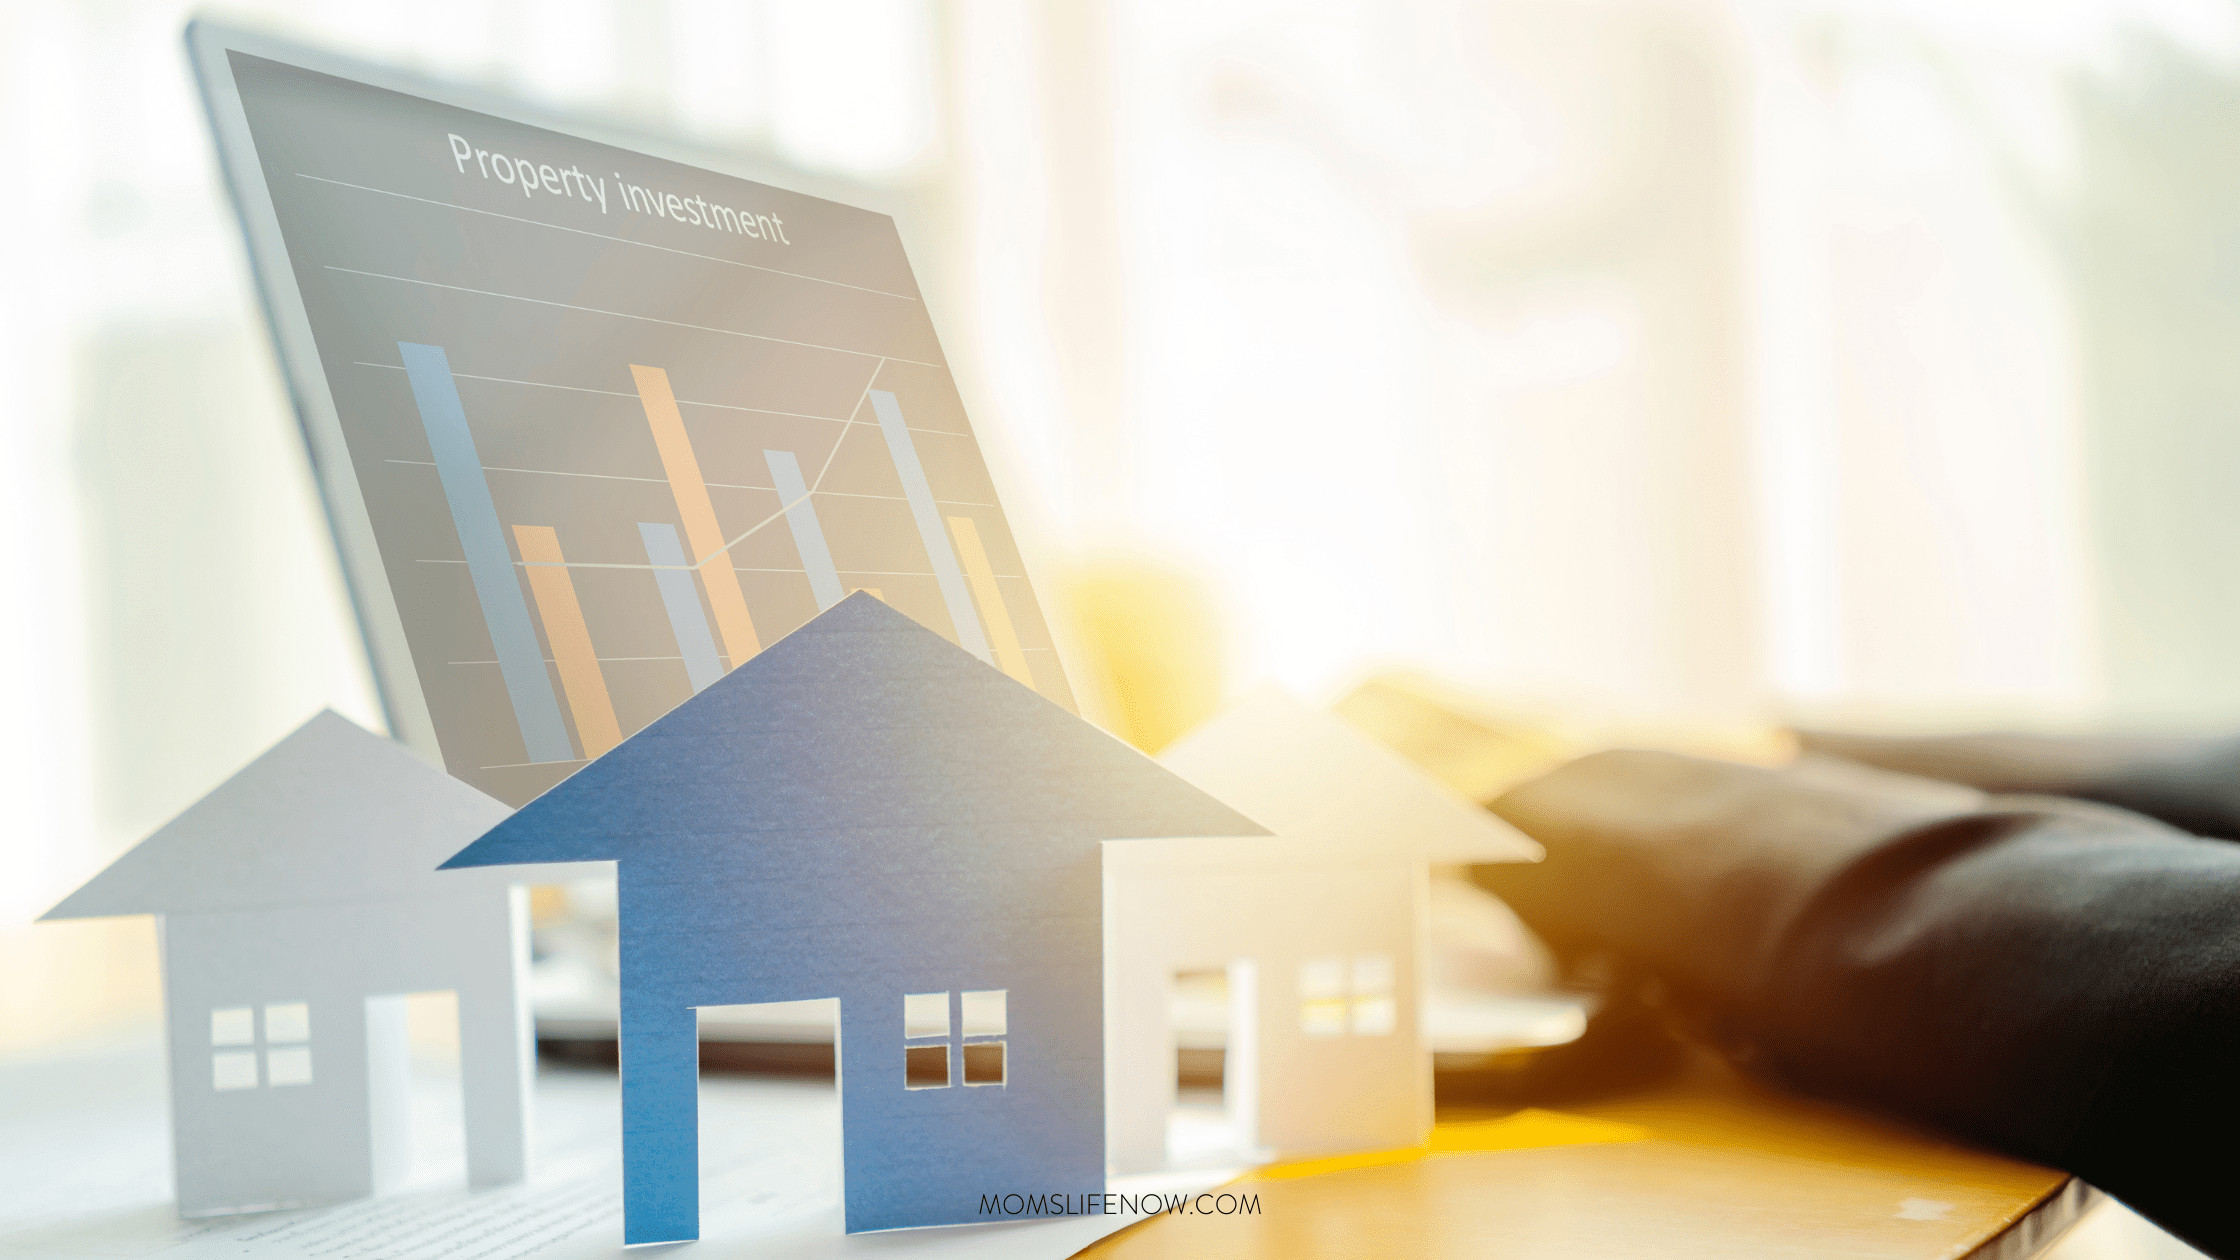 Real Estate Investment Strategies To Consider